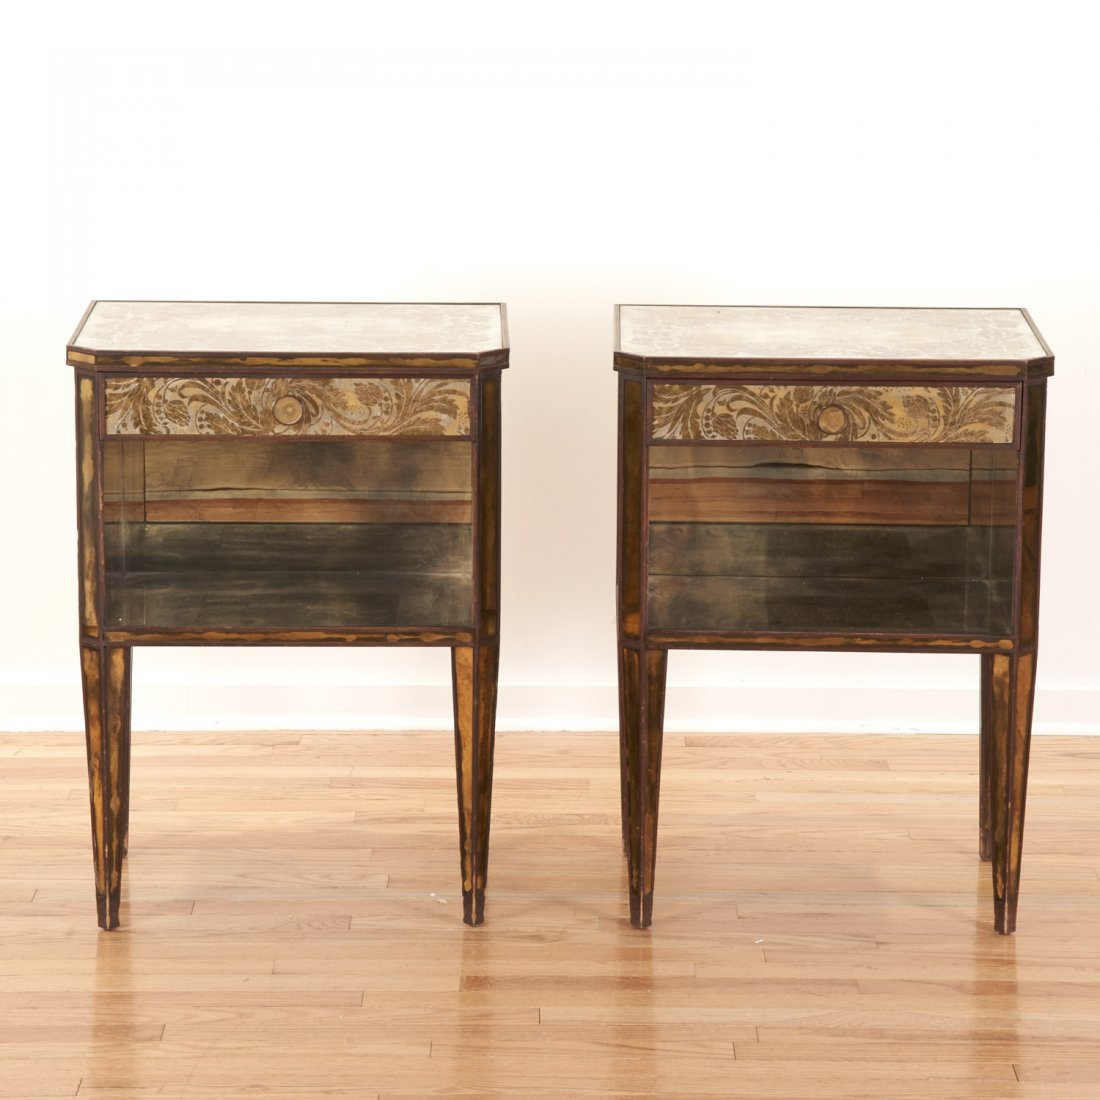 Pair Art Deco mirror paneled side tables - 2